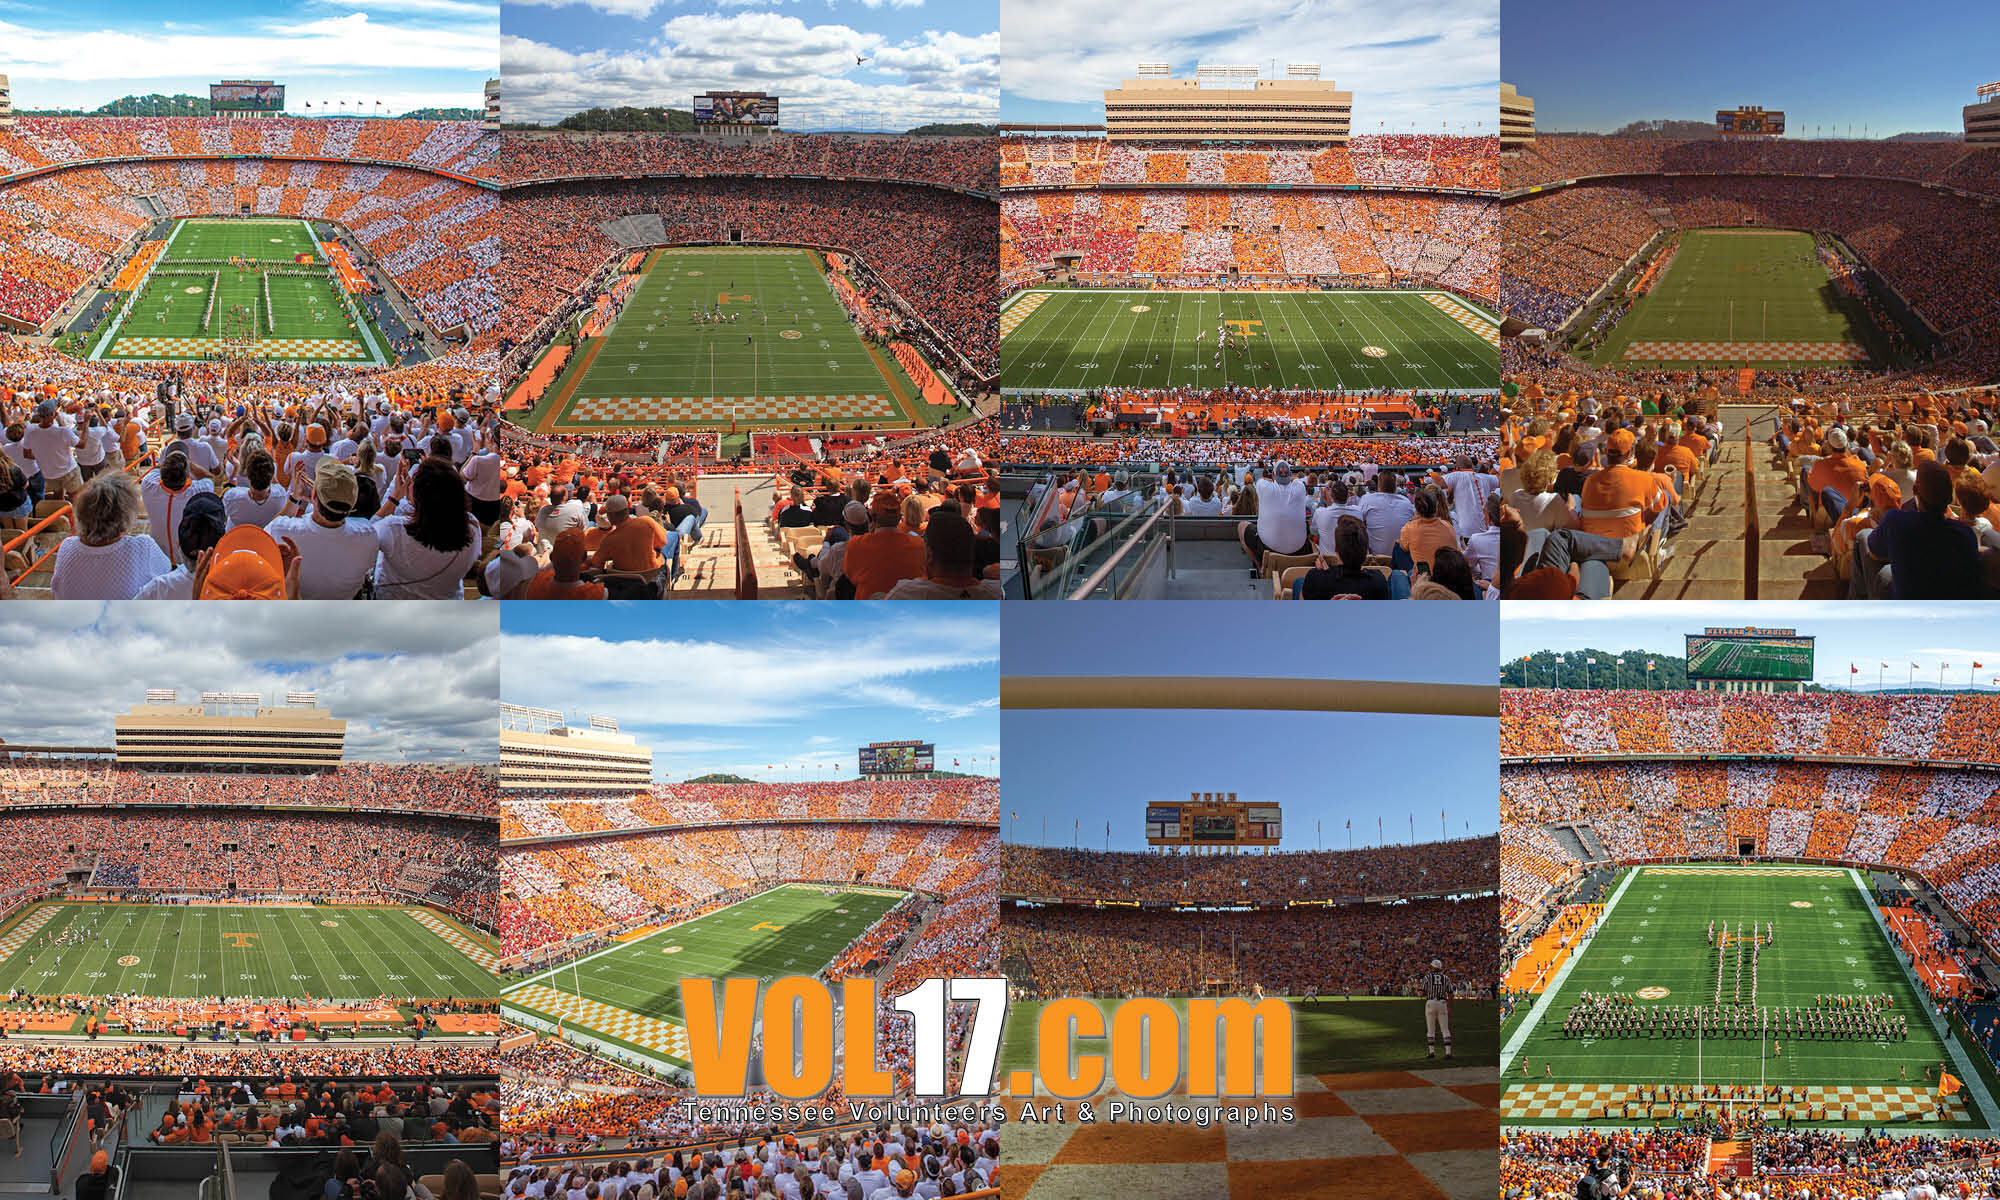 Neyland Stadium photos by Phil Reich